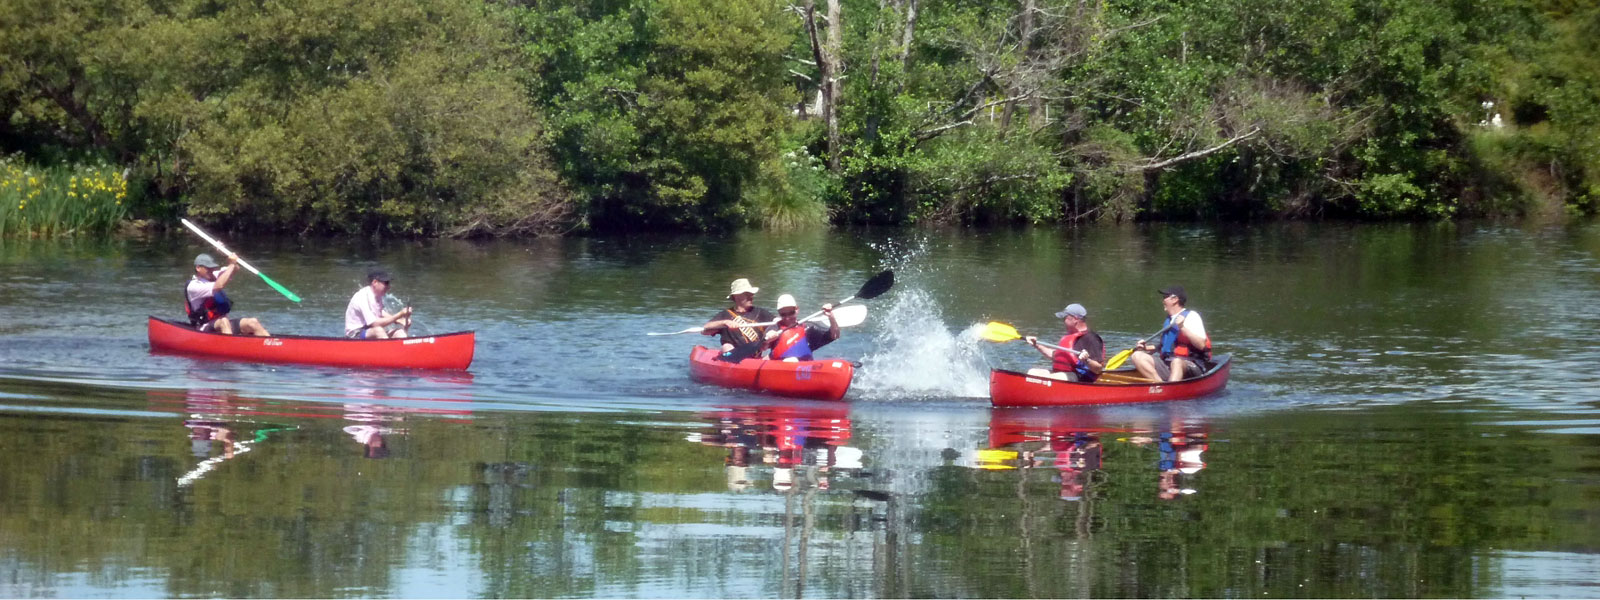 https://www.selectcottages.com/sites/default/files/revslider/image/kayaks-on-river-blavet.jpg